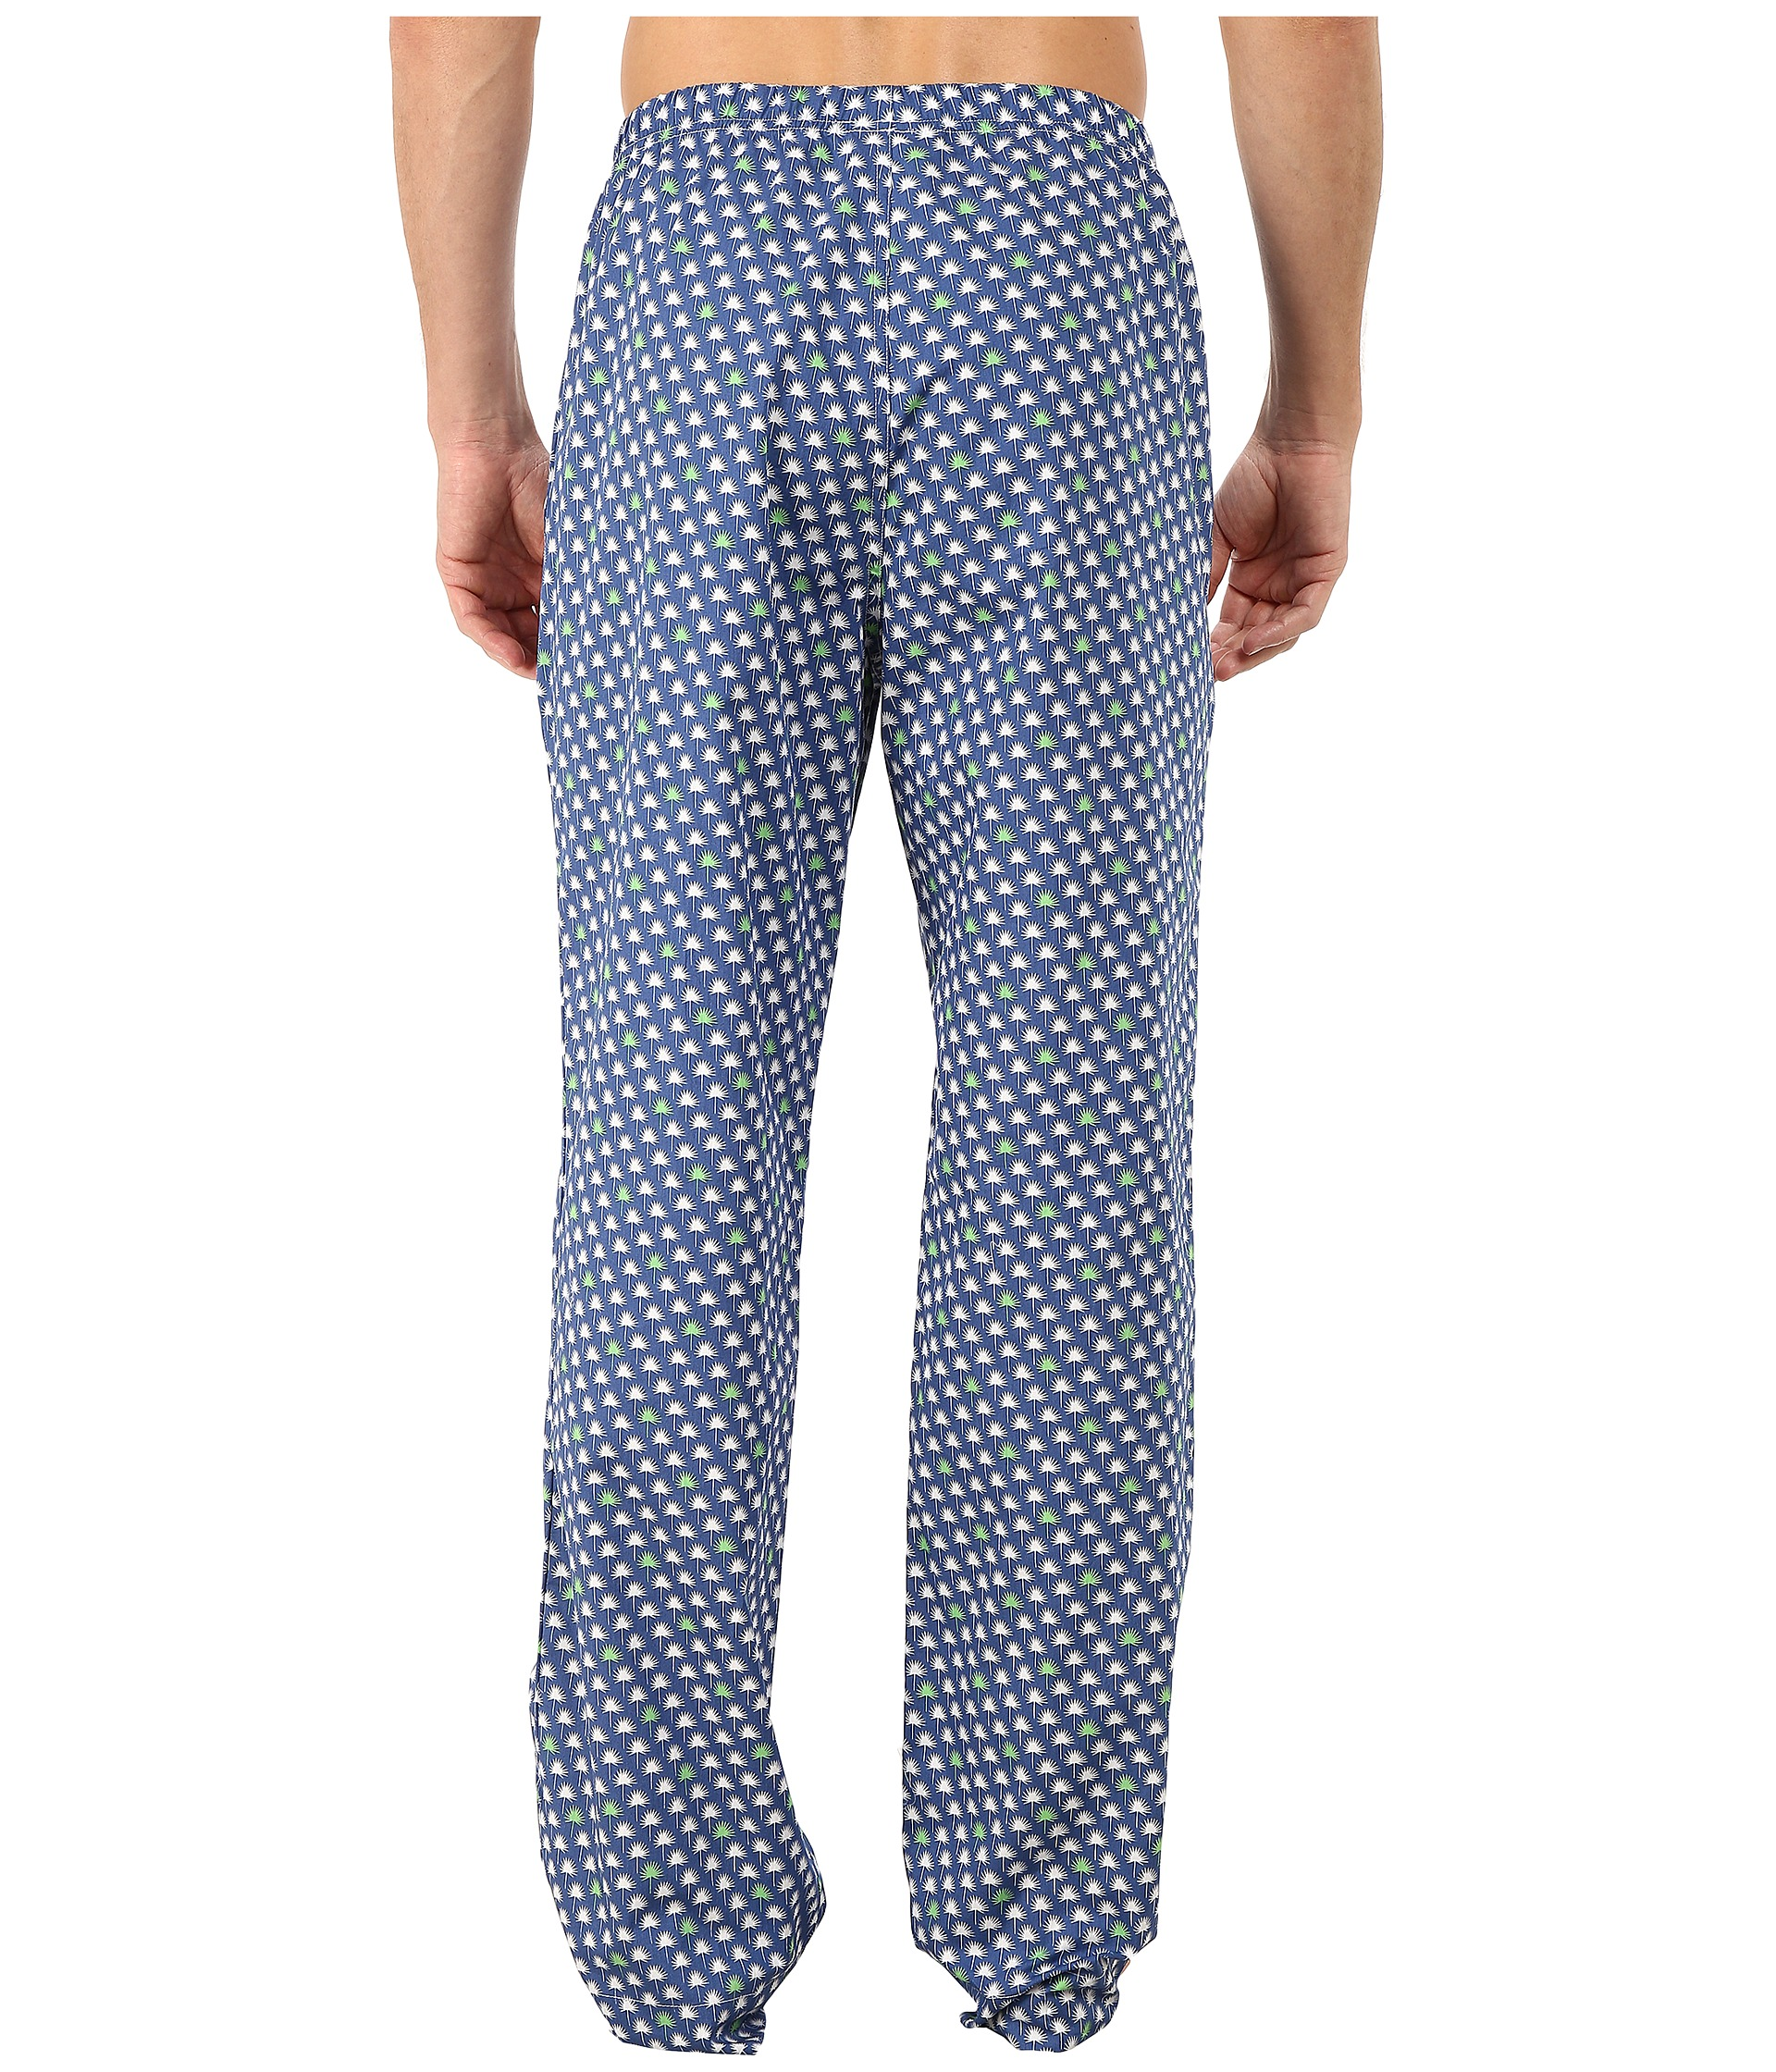 Vineyard Vines Lounge Pants Palmetto Moonshine Zappos